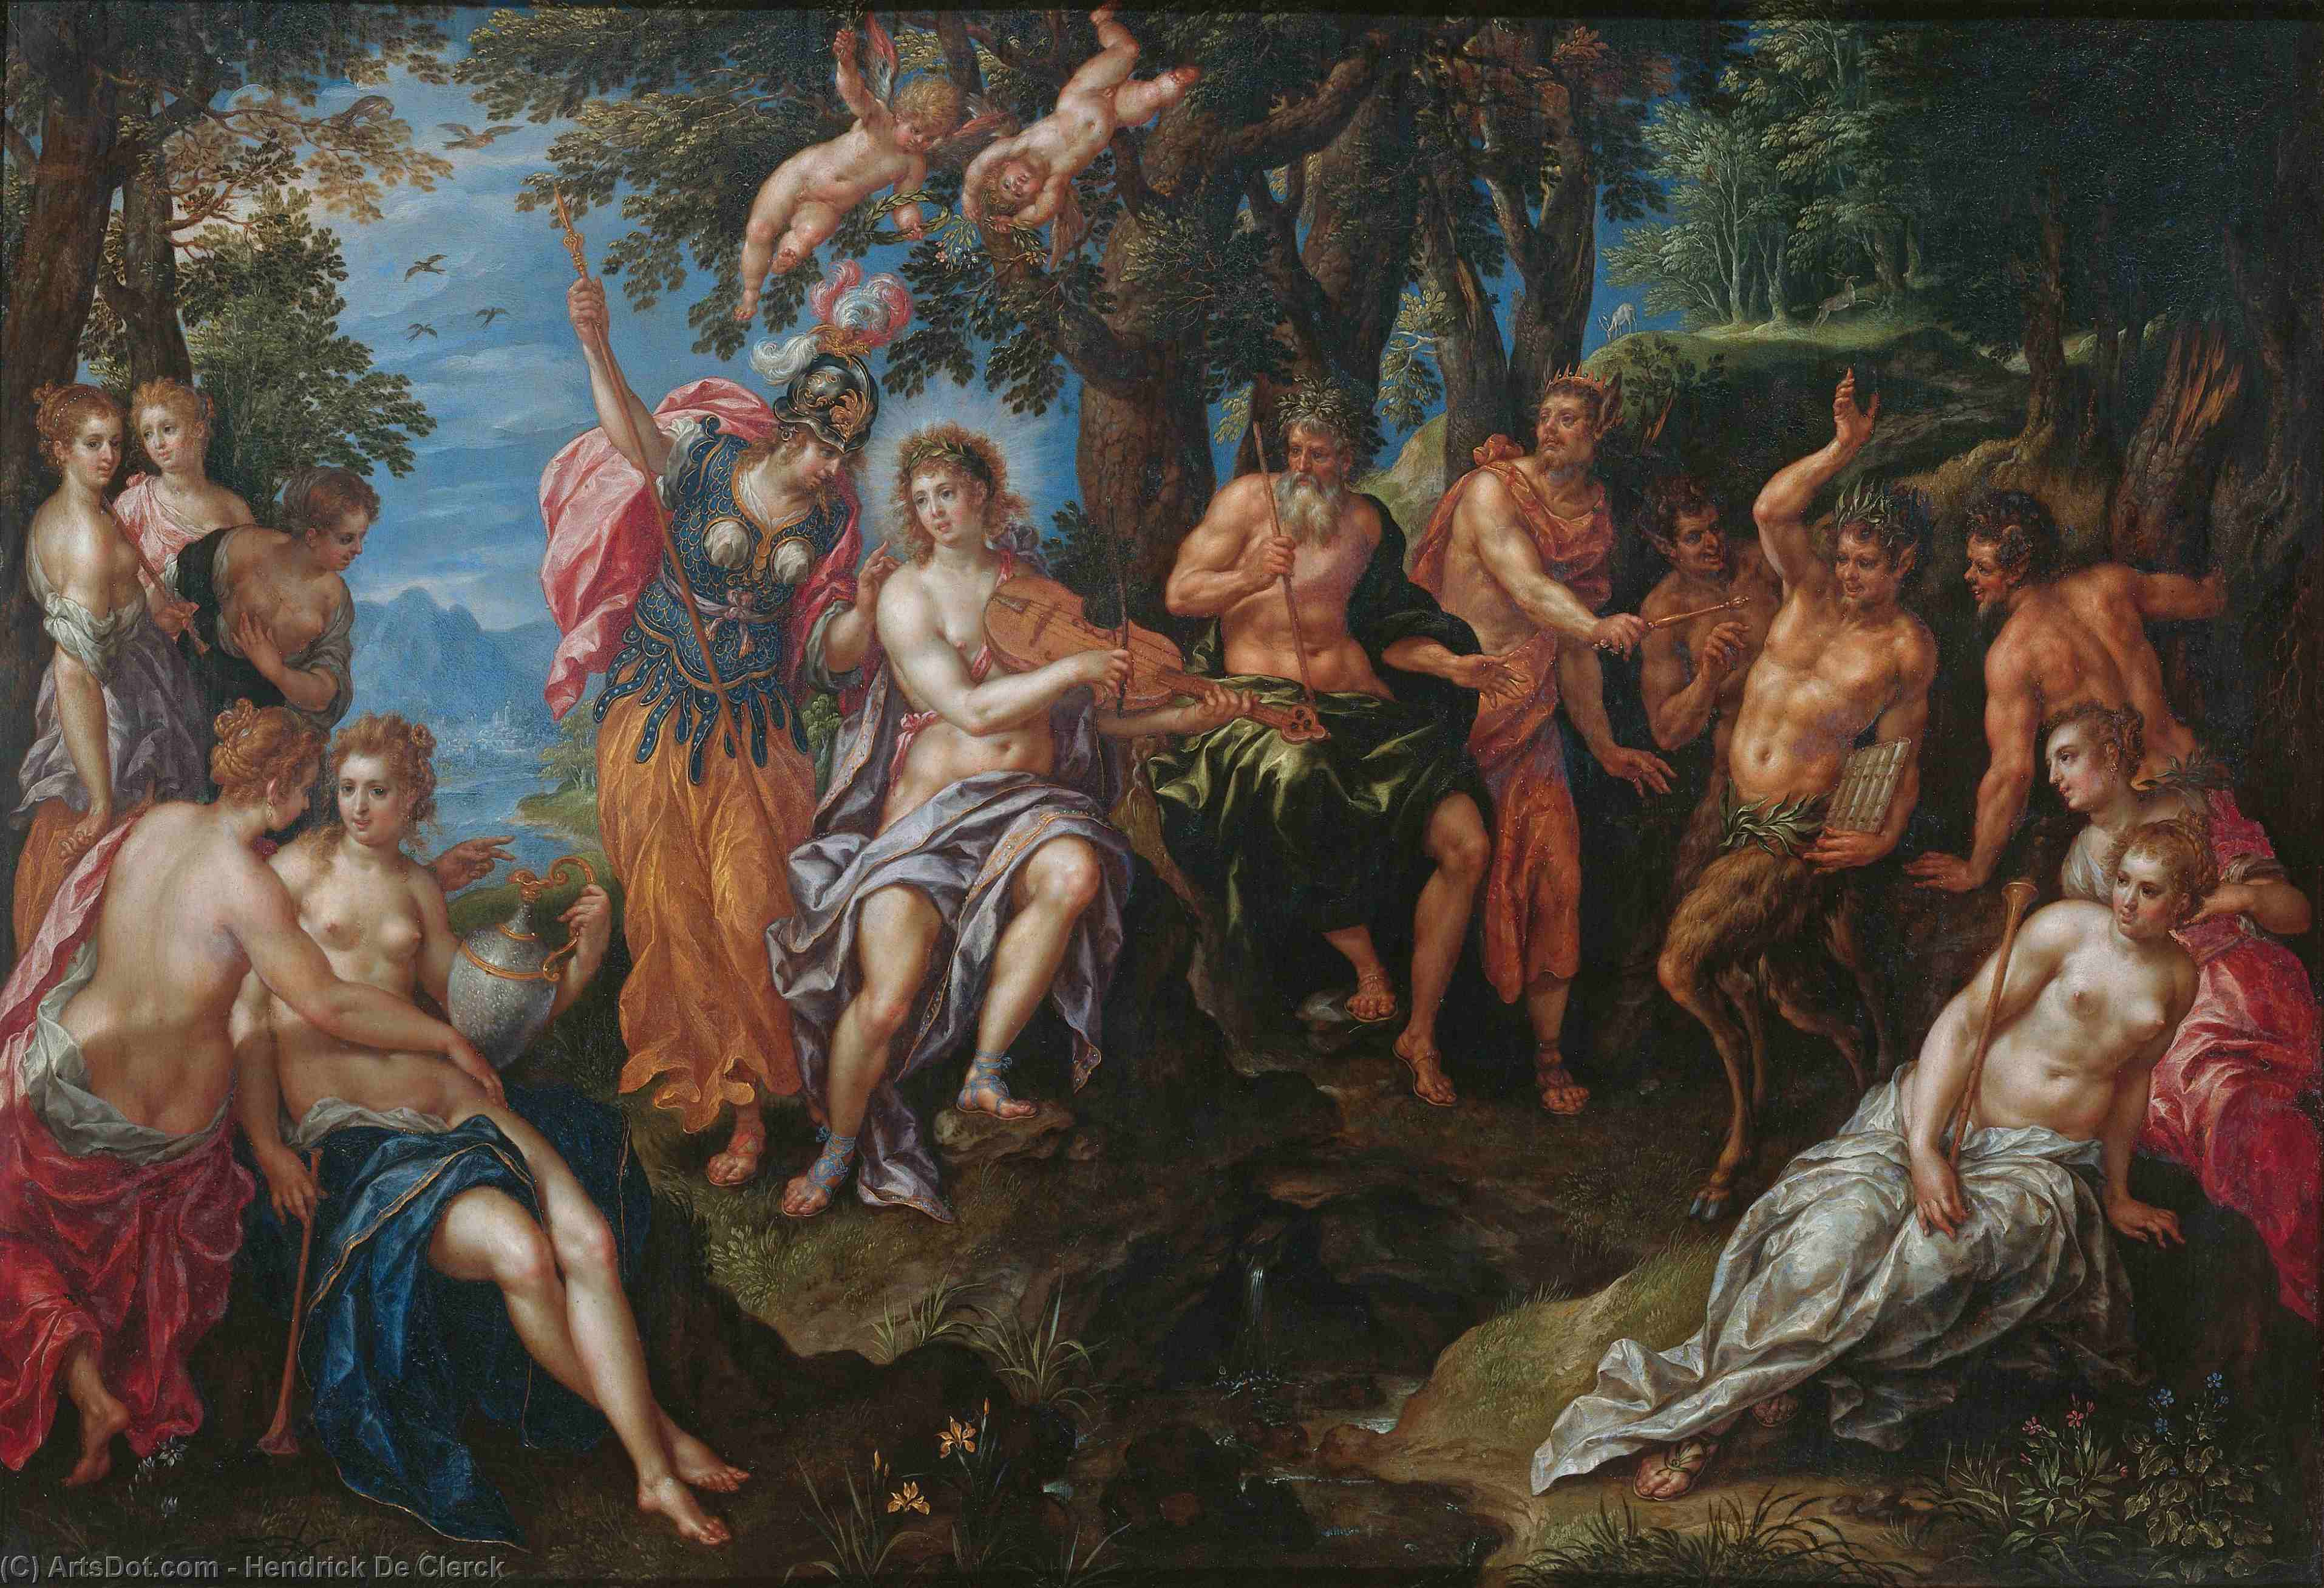 Wikioo.org - The Encyclopedia of Fine Arts - Painting, Artwork by Hendrick De Clerck - The contest between Apollo and Pan